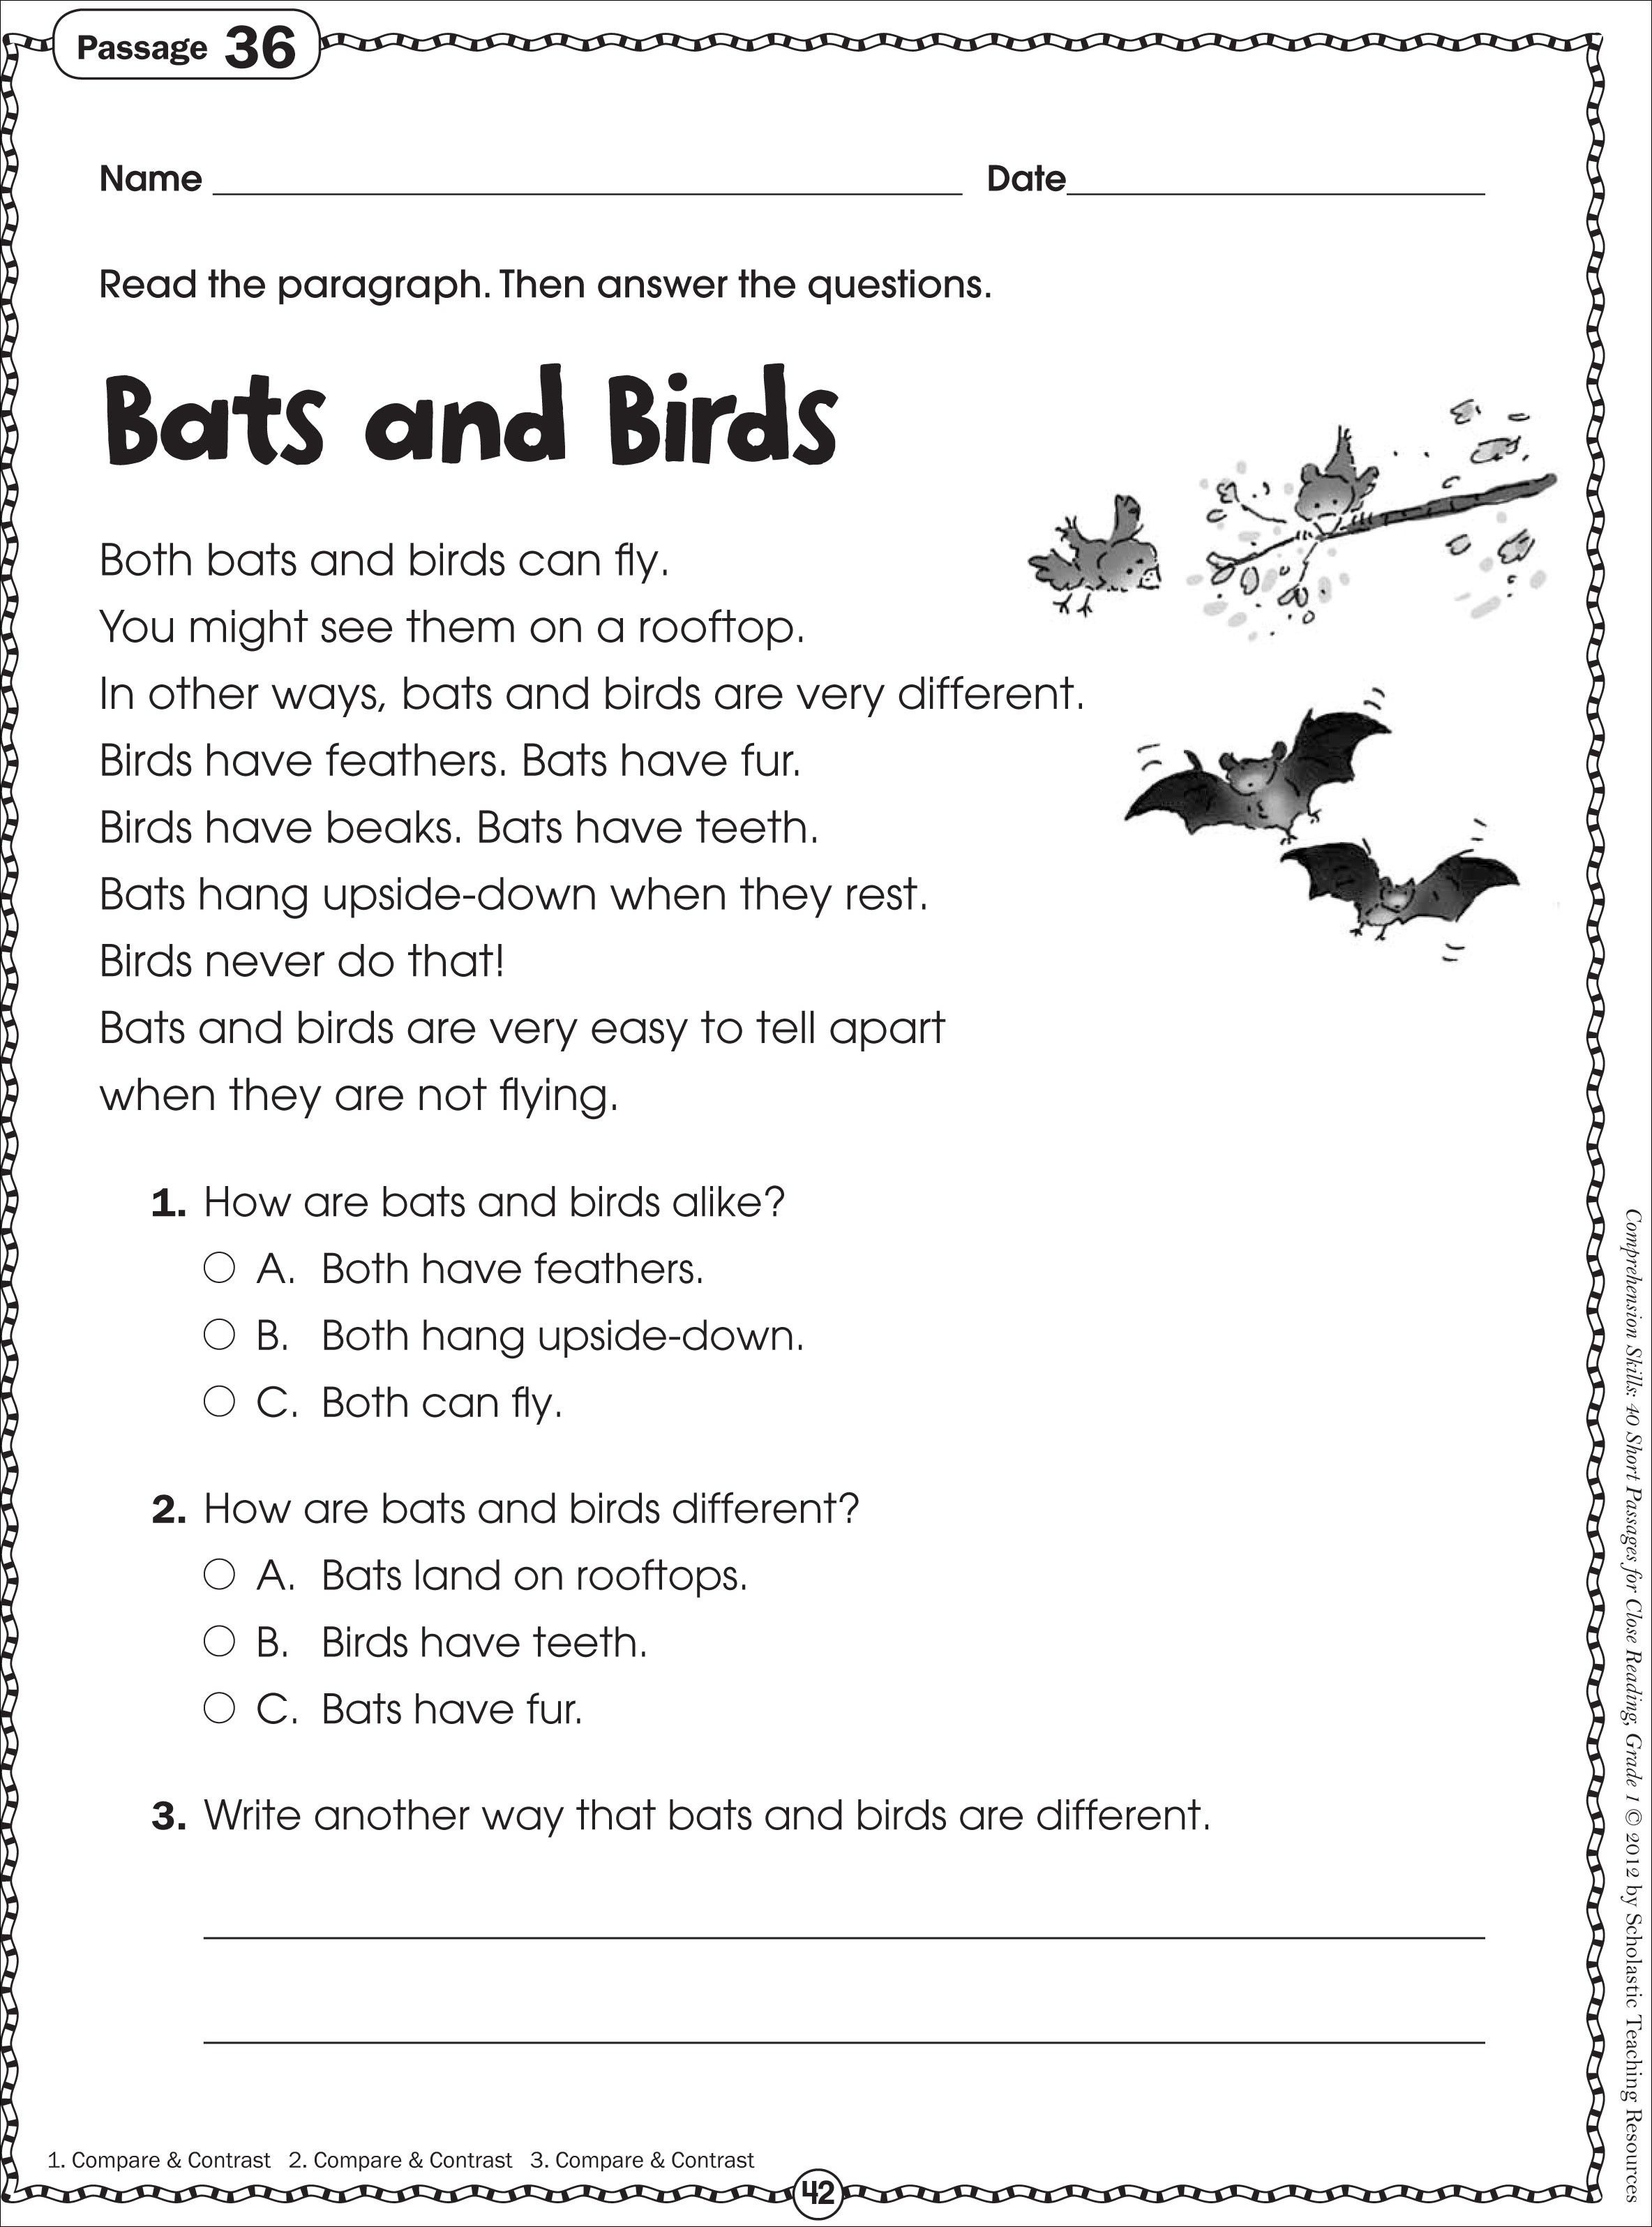 Free Printable Reading Comprehension Worksheets For Kindergarten - Free Printable Reading Worksheets